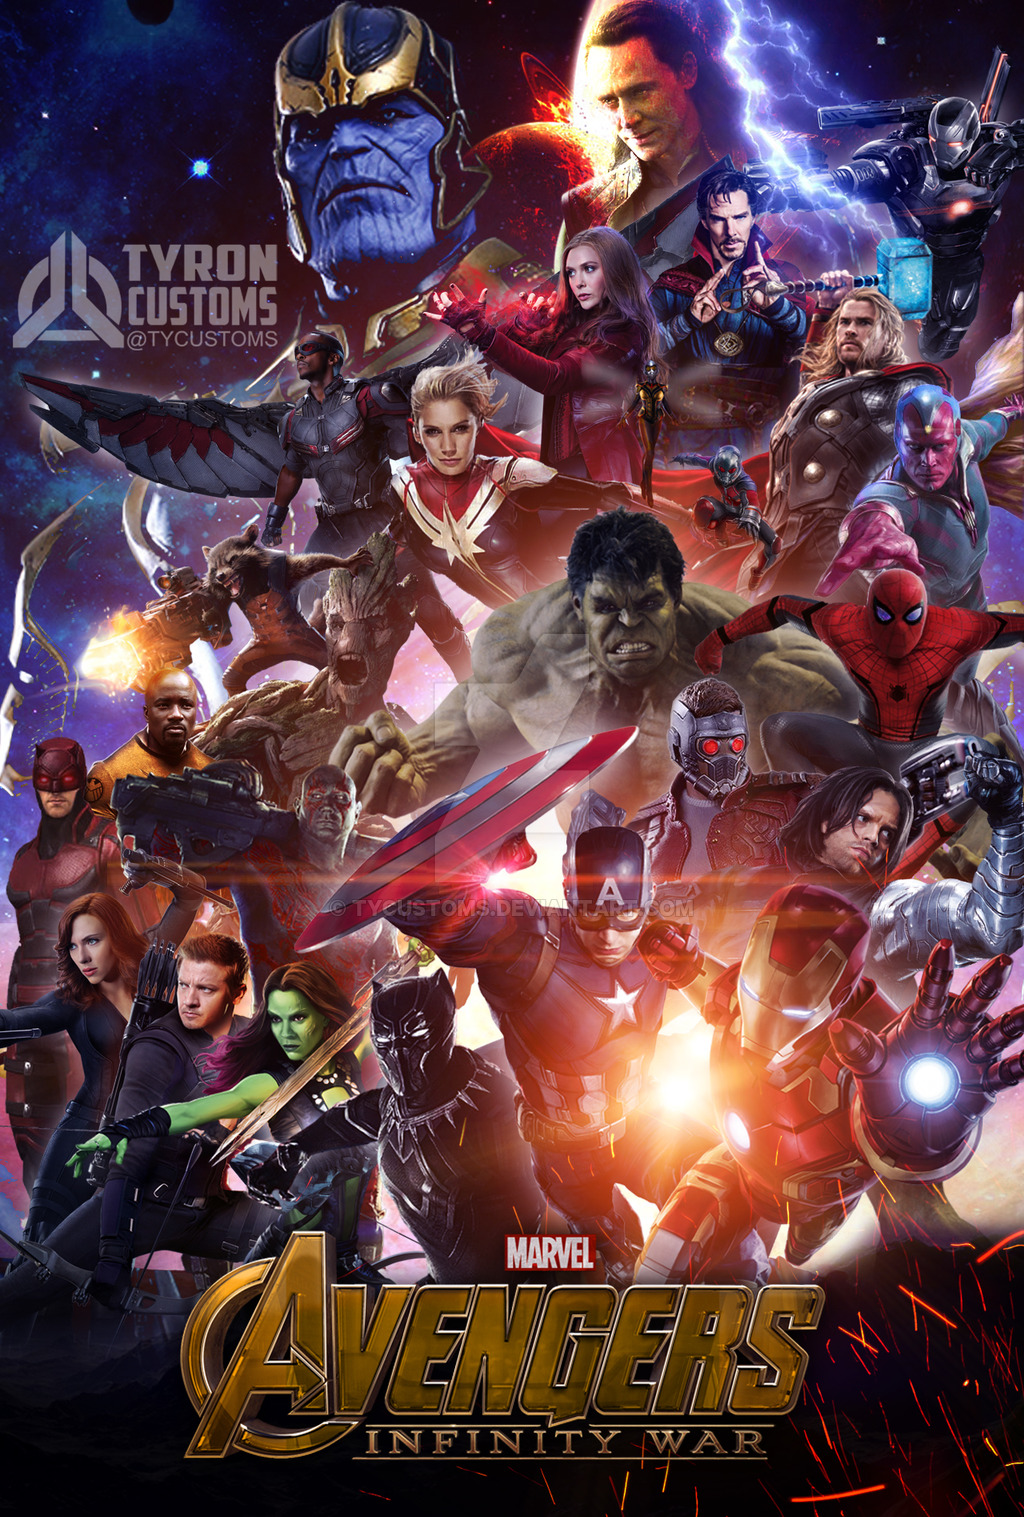 Infinity war textless movie poster